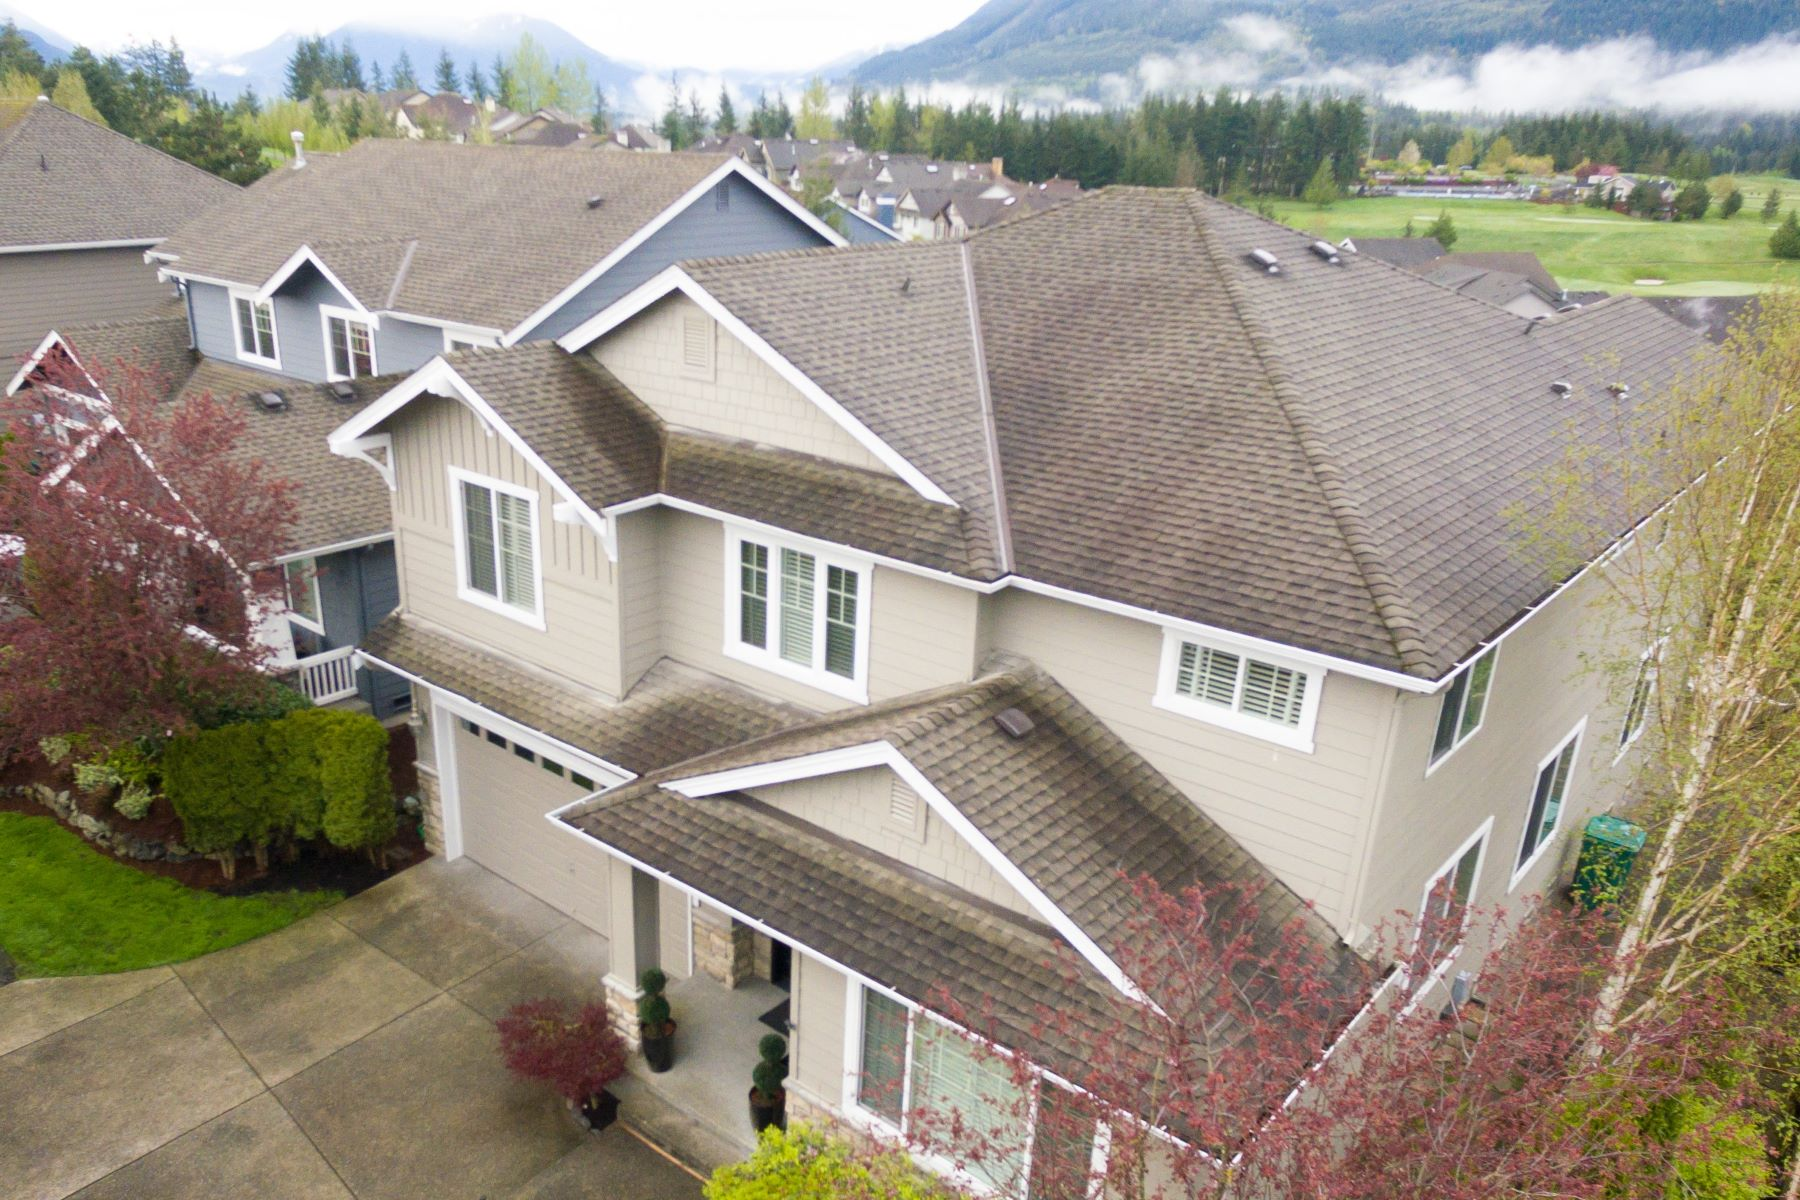 Single Family Home for Sale at Tranquil Snoqualmie Ridge Property 35903 SE Kaleetan Loop Snoqualmie, Washington 98065 United States